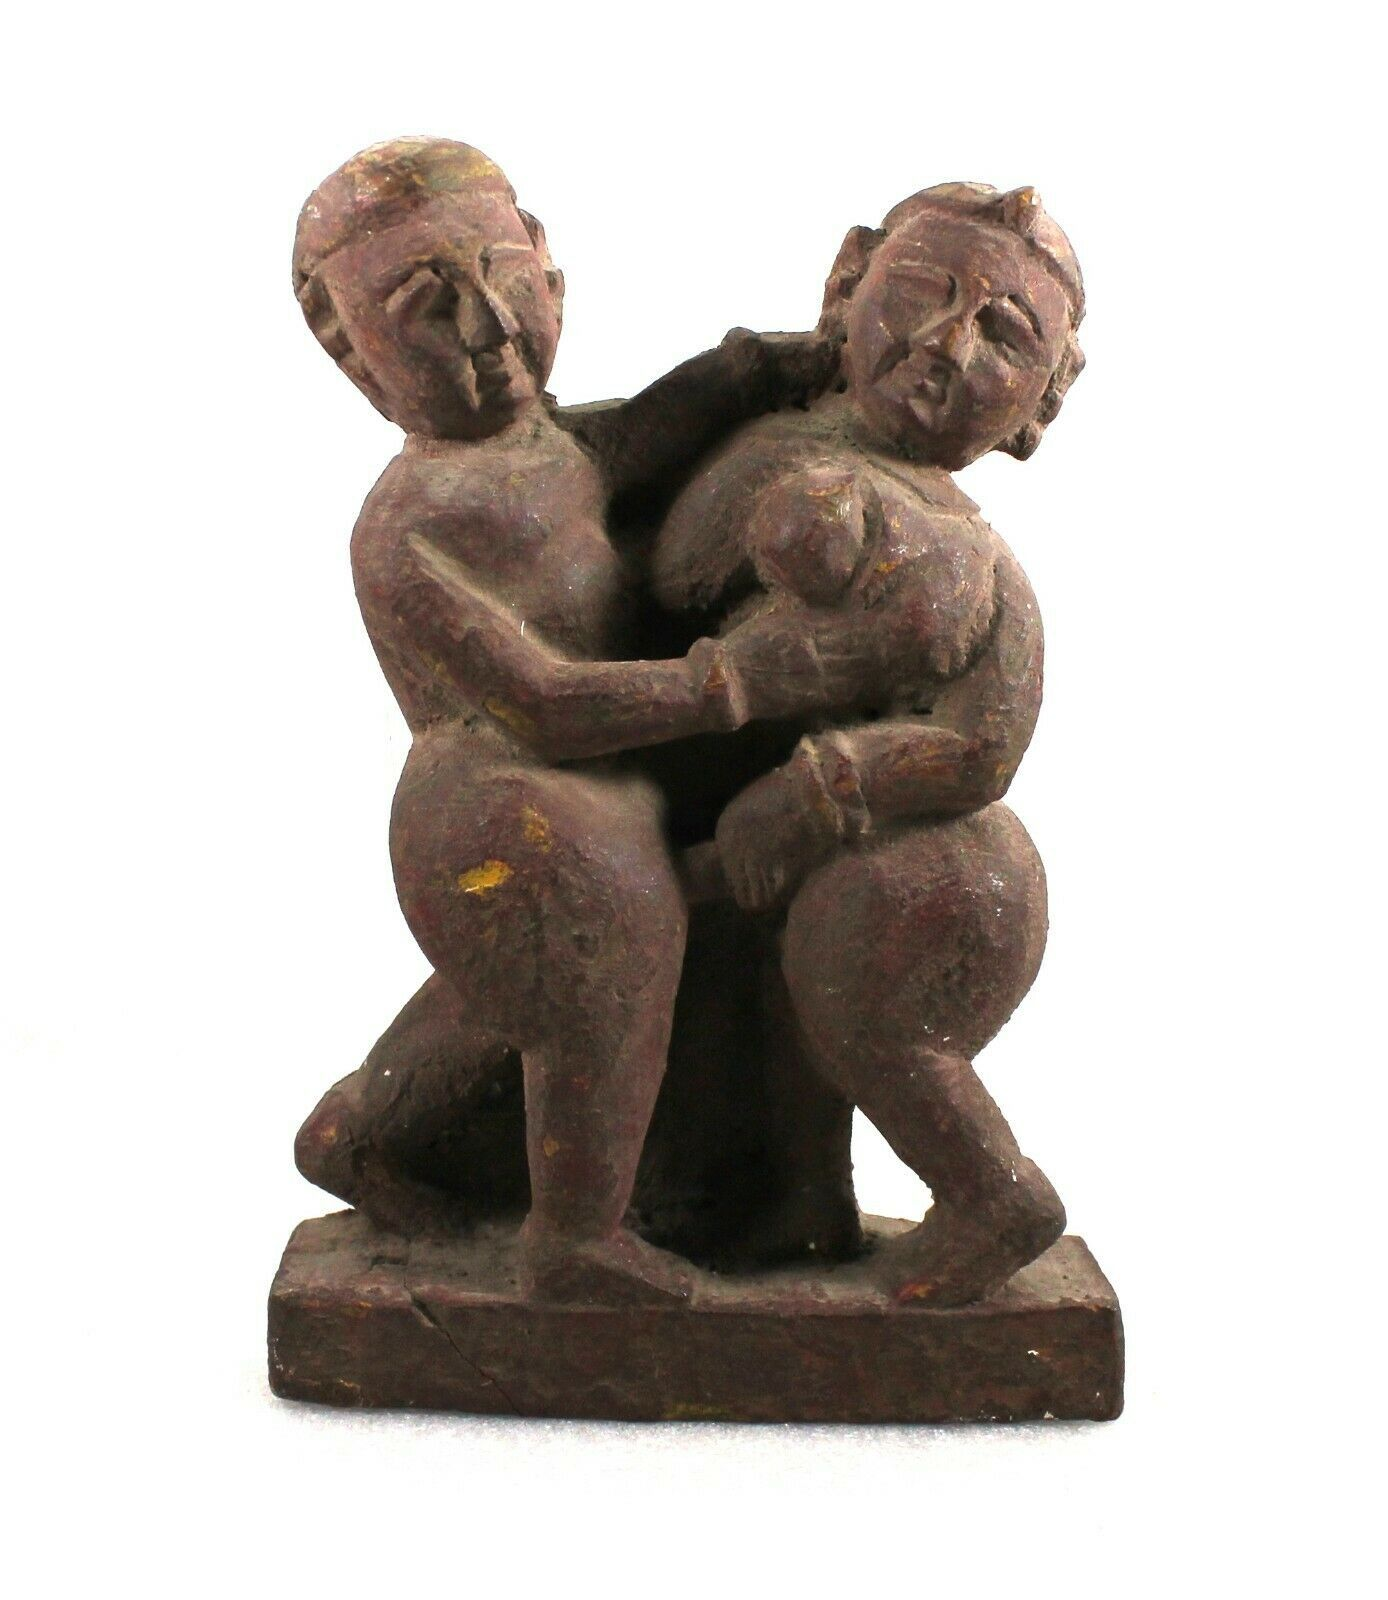 Primary image for Erotic Wooden Statue Figure Old Antique Handmade Vintage Sculpture Collectible